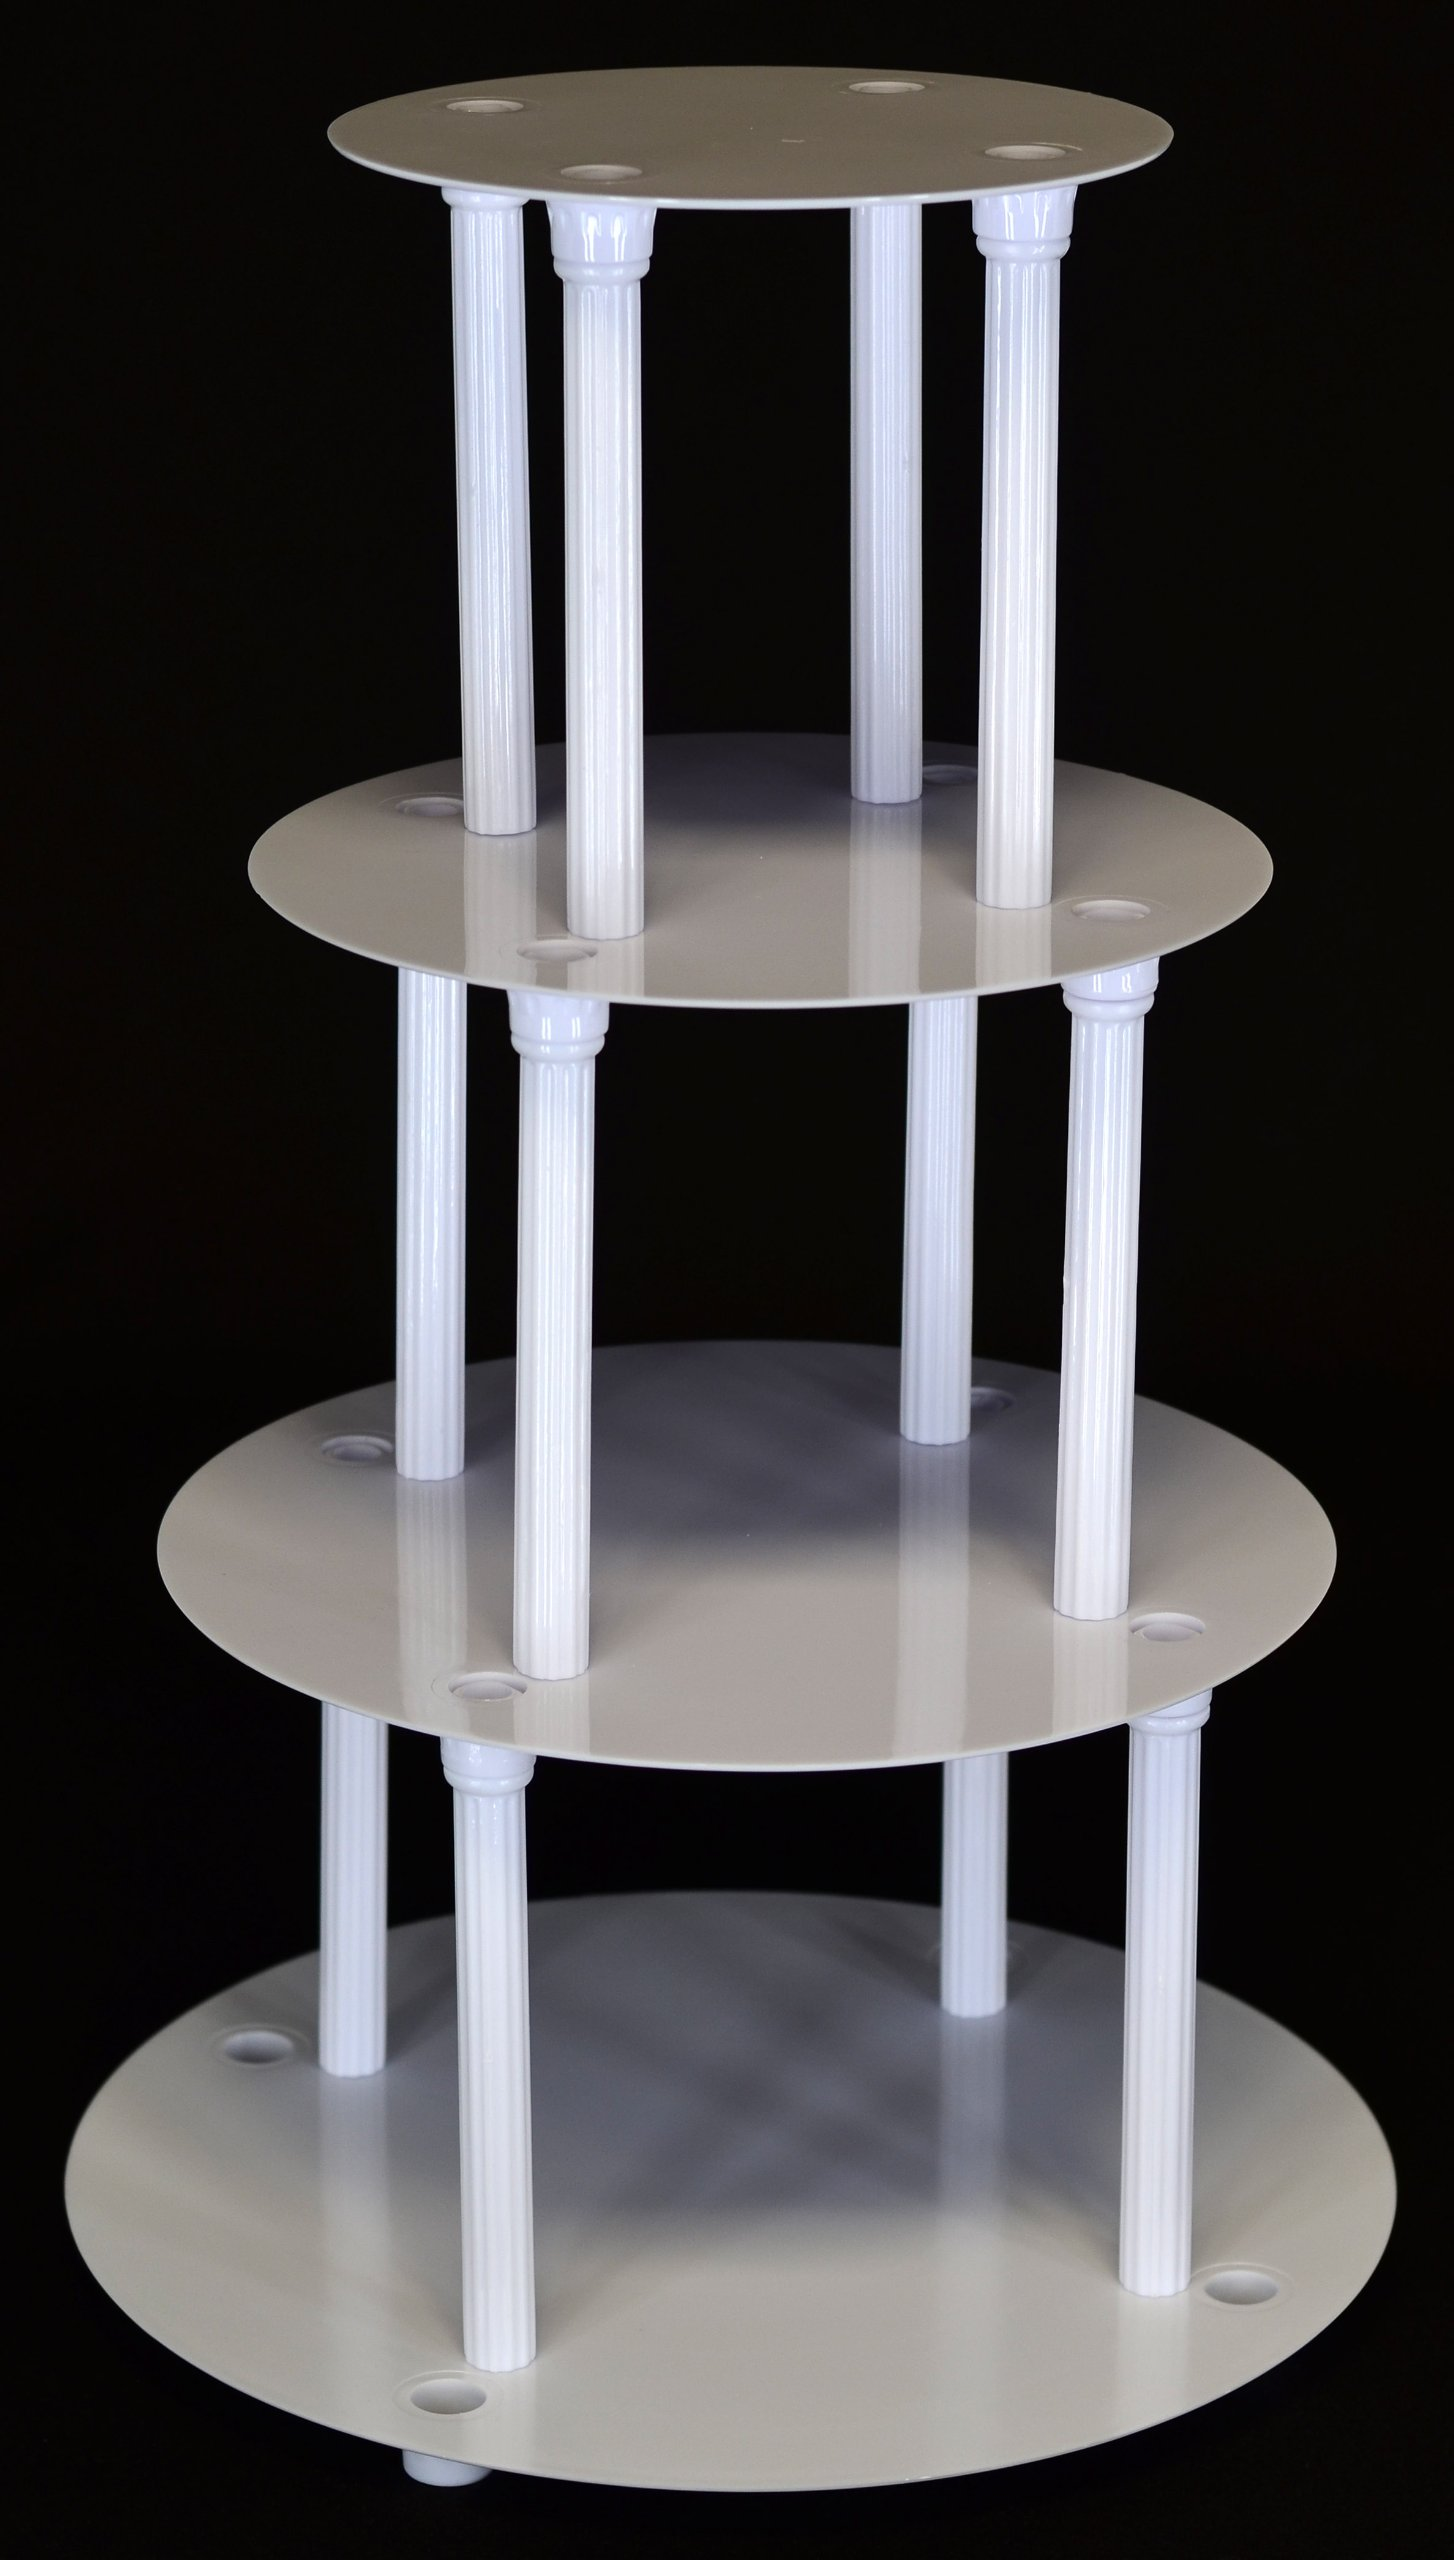 4 TIER CAKE SEPARATOR PLATE AND PILLAR SET (STYLE 1101)